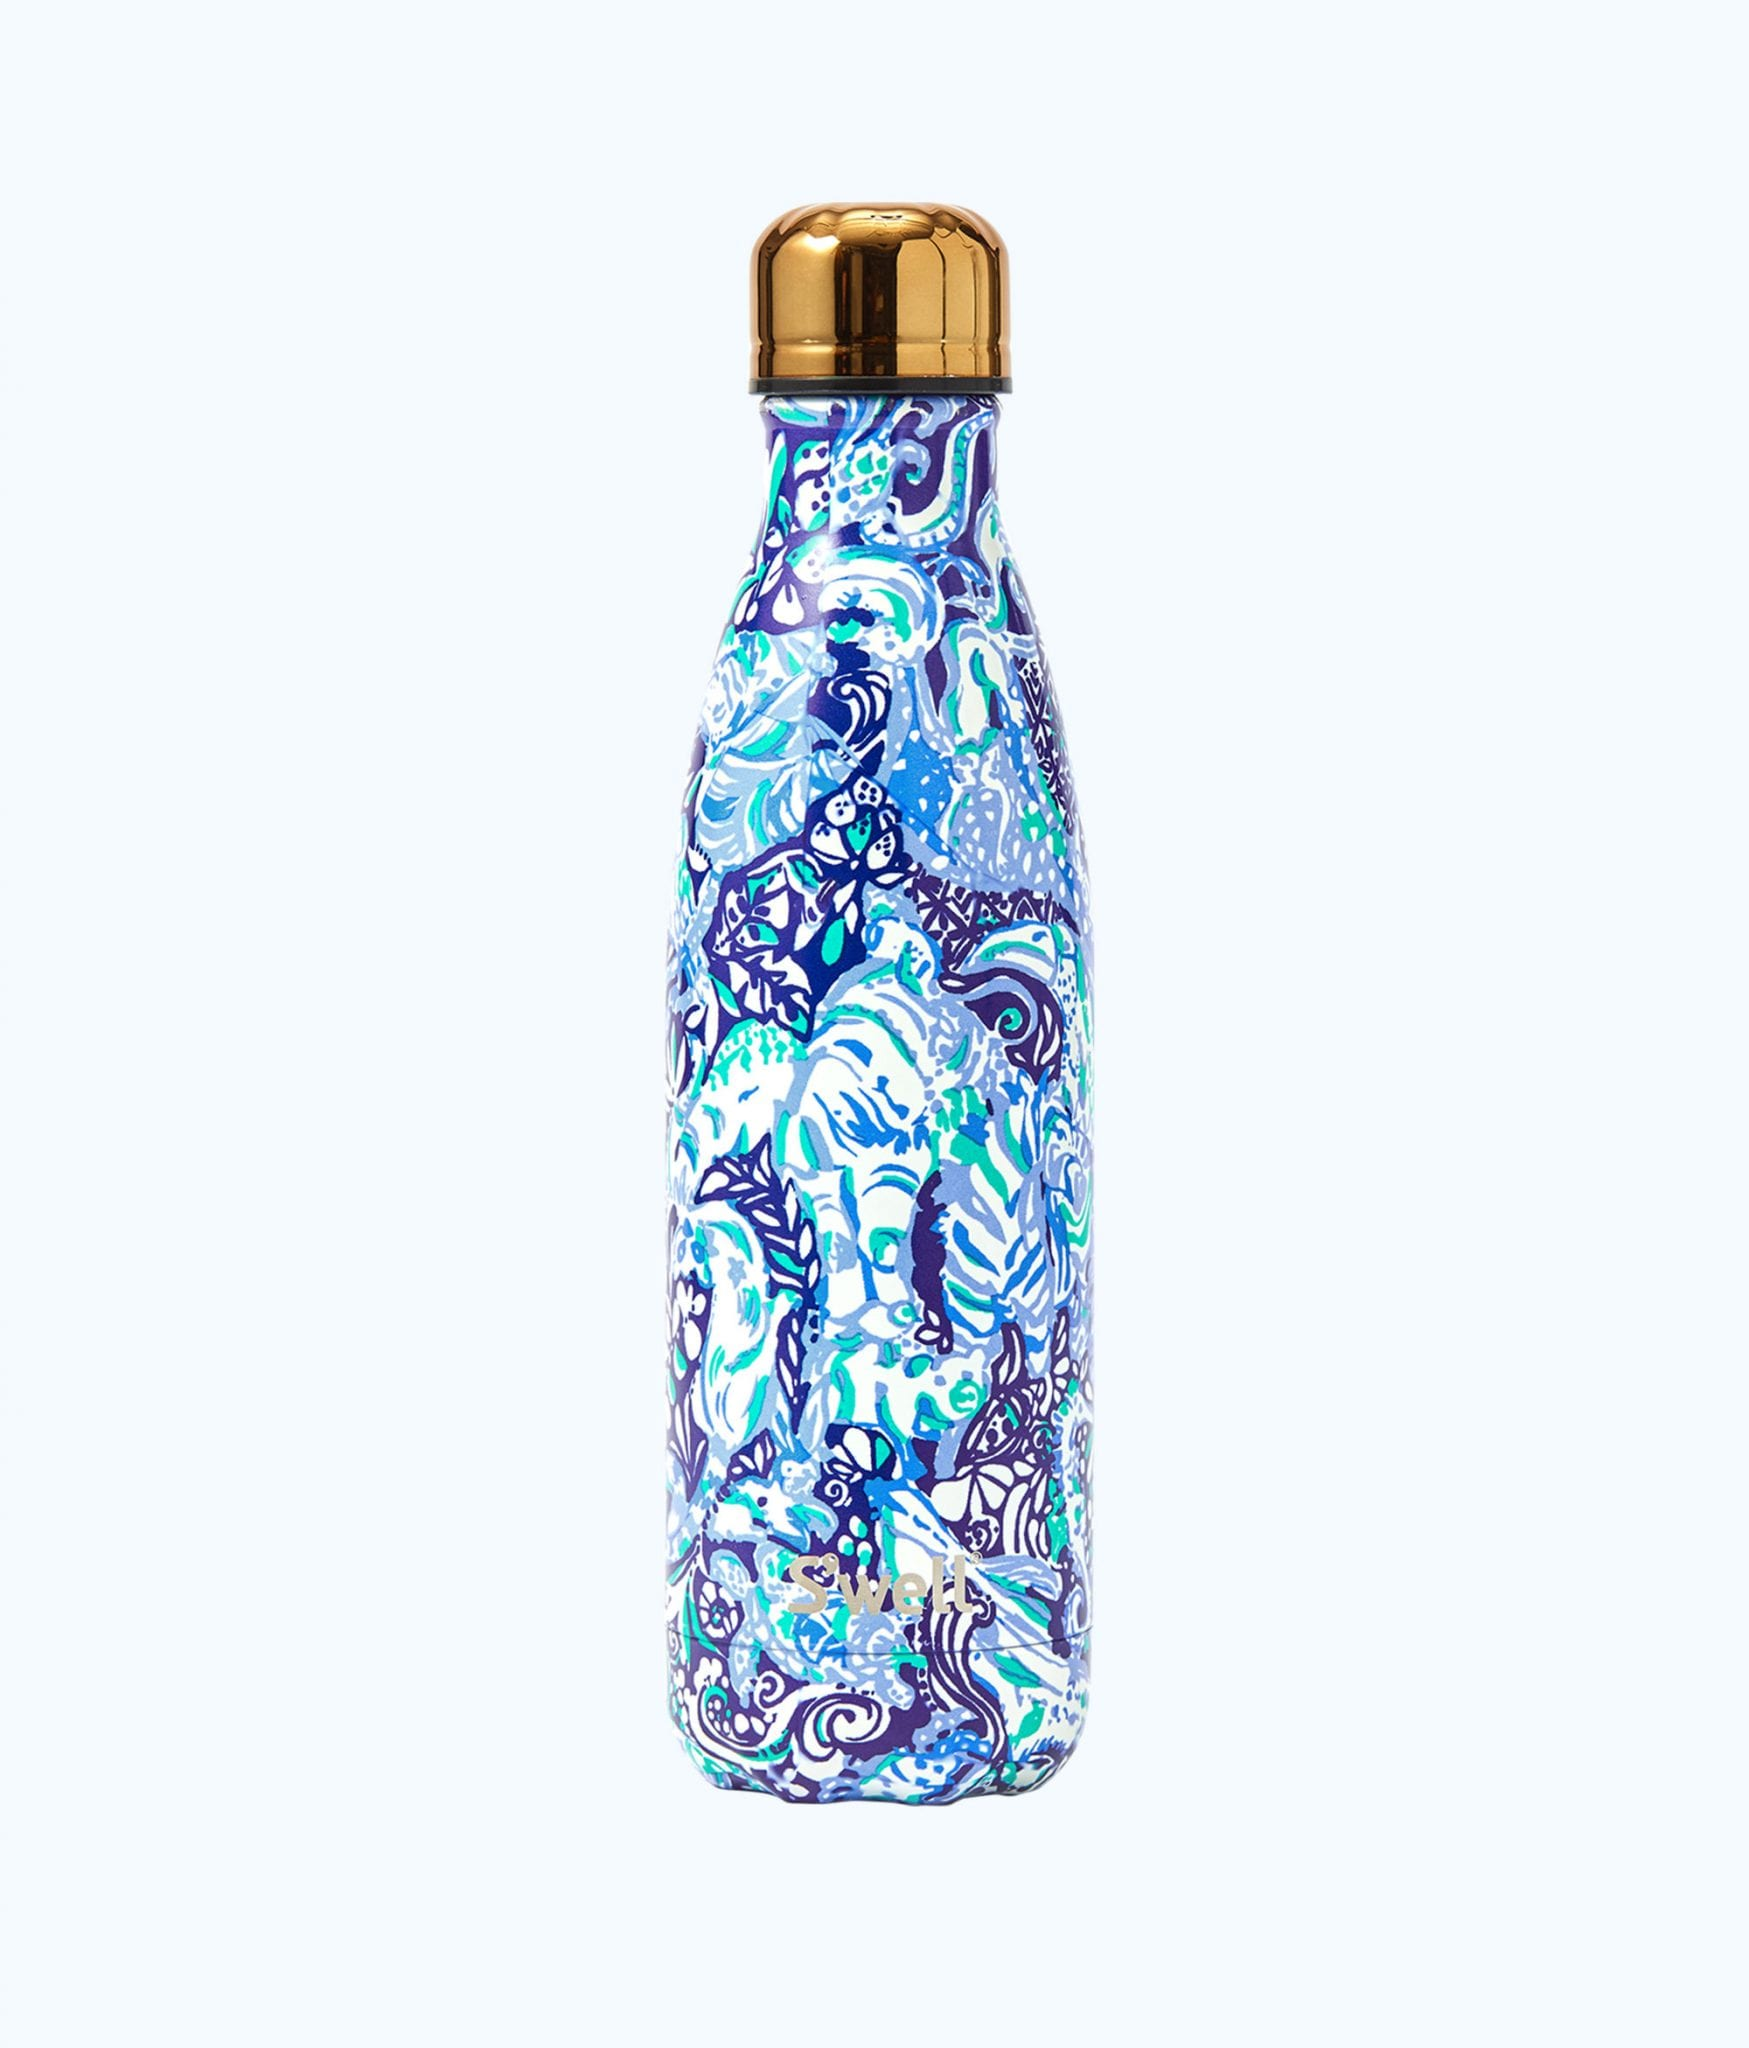 87dafecc49a6ea 17 OZ S'WELL BOTTLE - 60 ANIMALS - Lilly Pulitzer Store - Life's a Beach